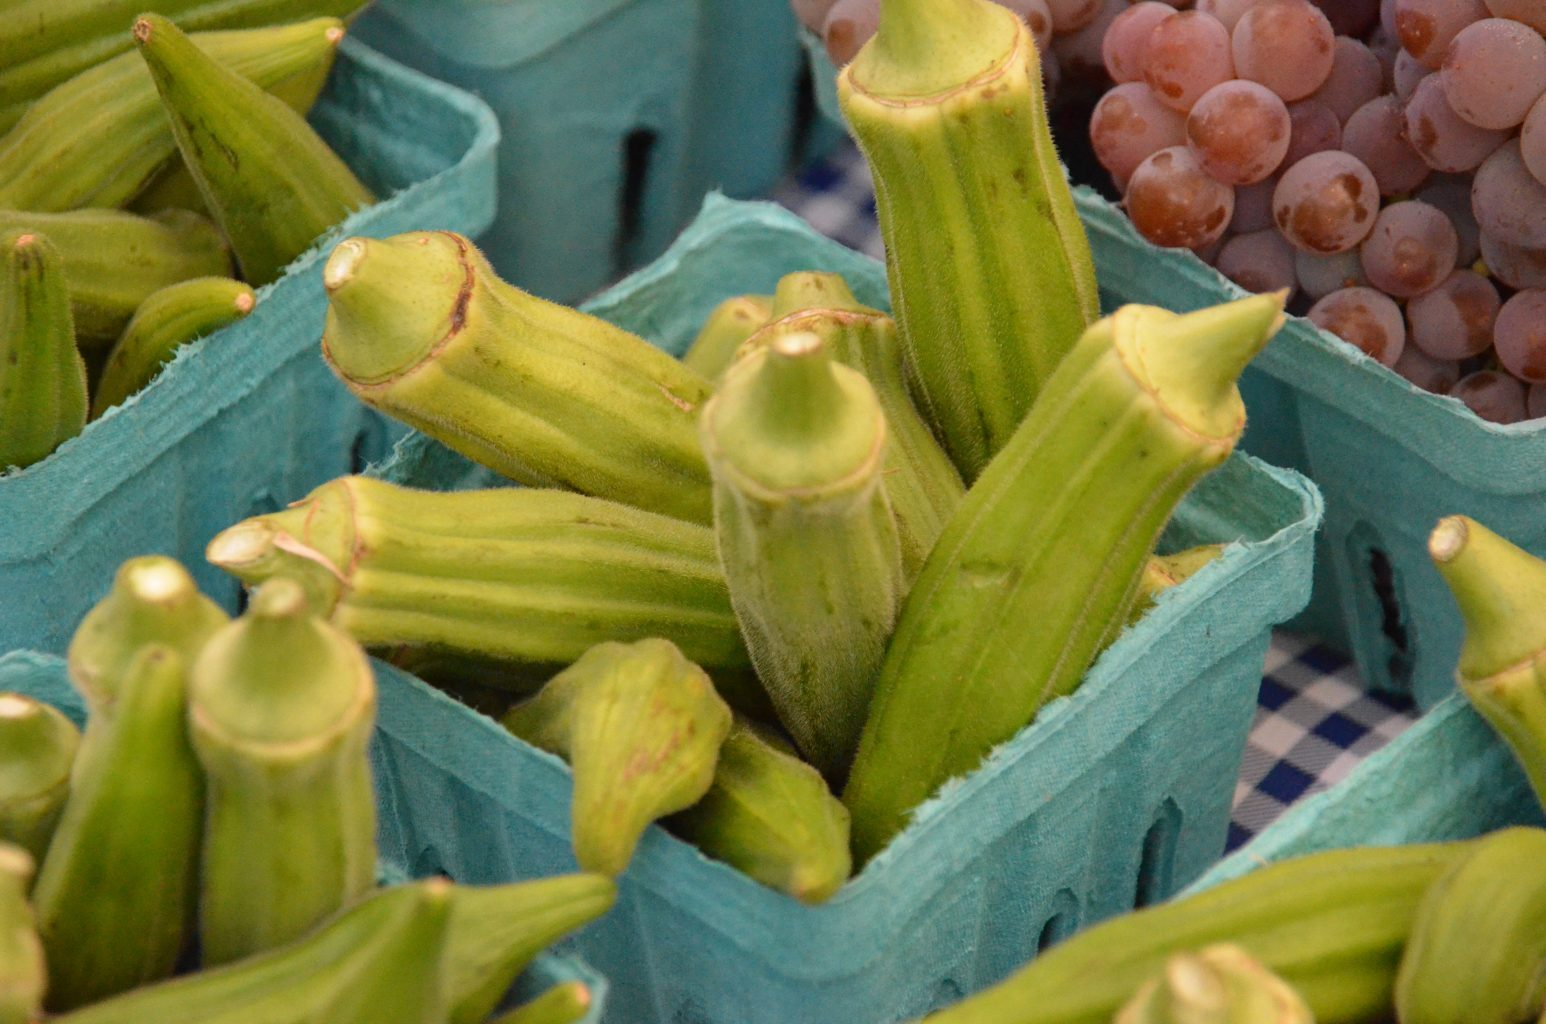 Okra at a farmers market